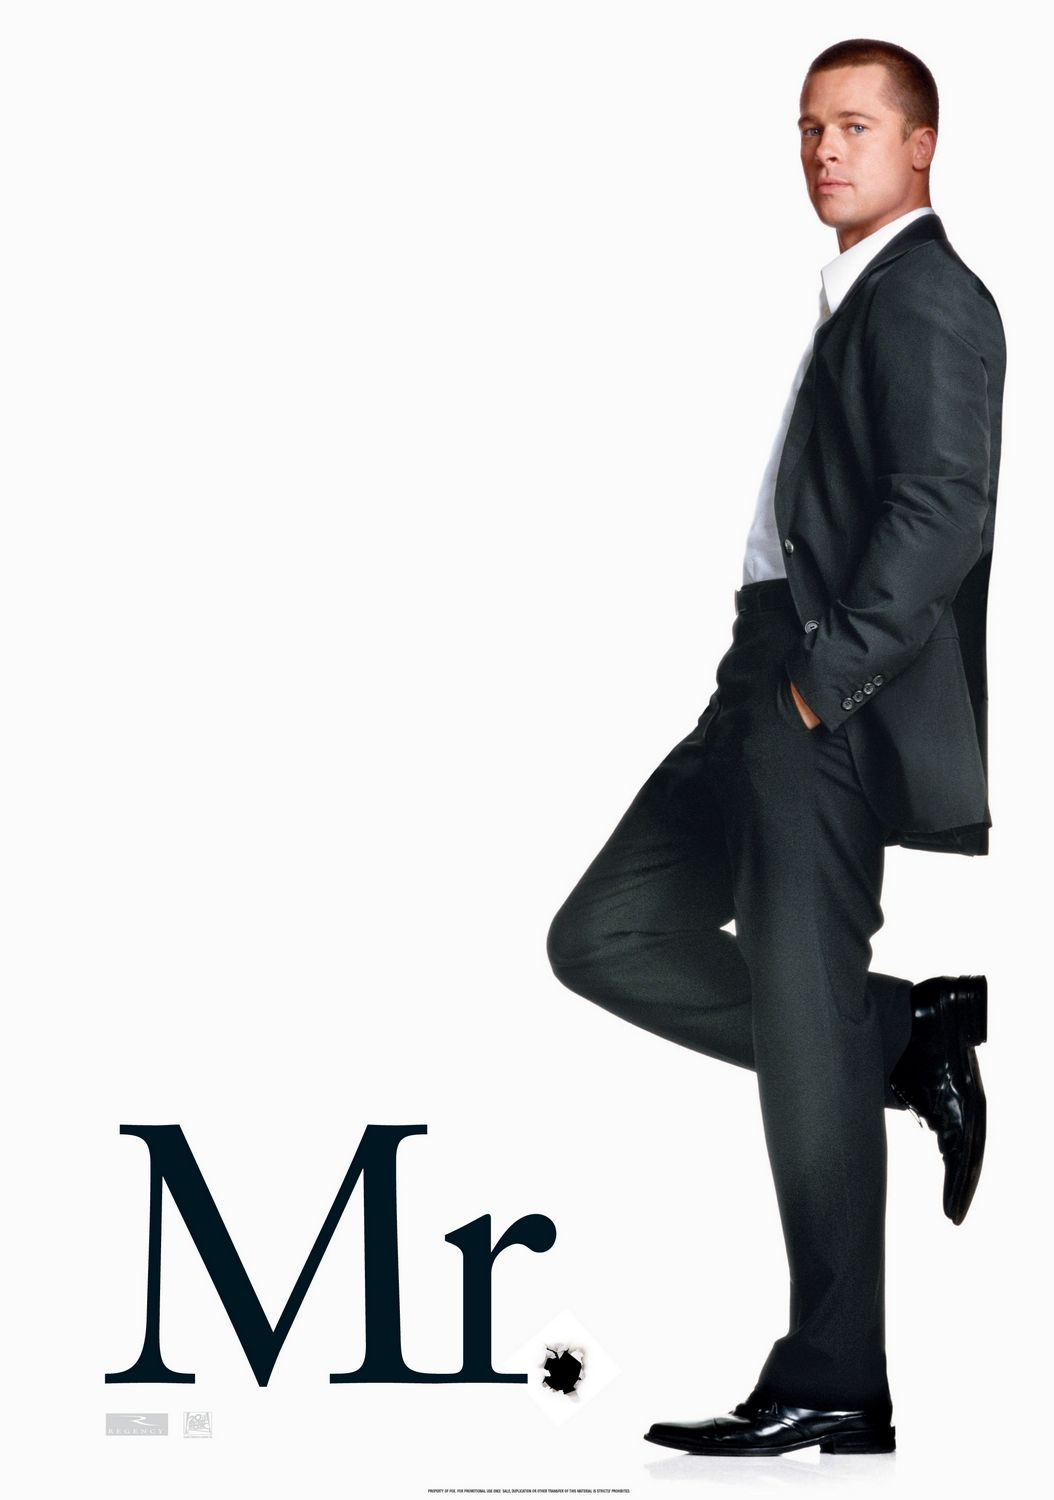 Mr Smith - Spy film poster